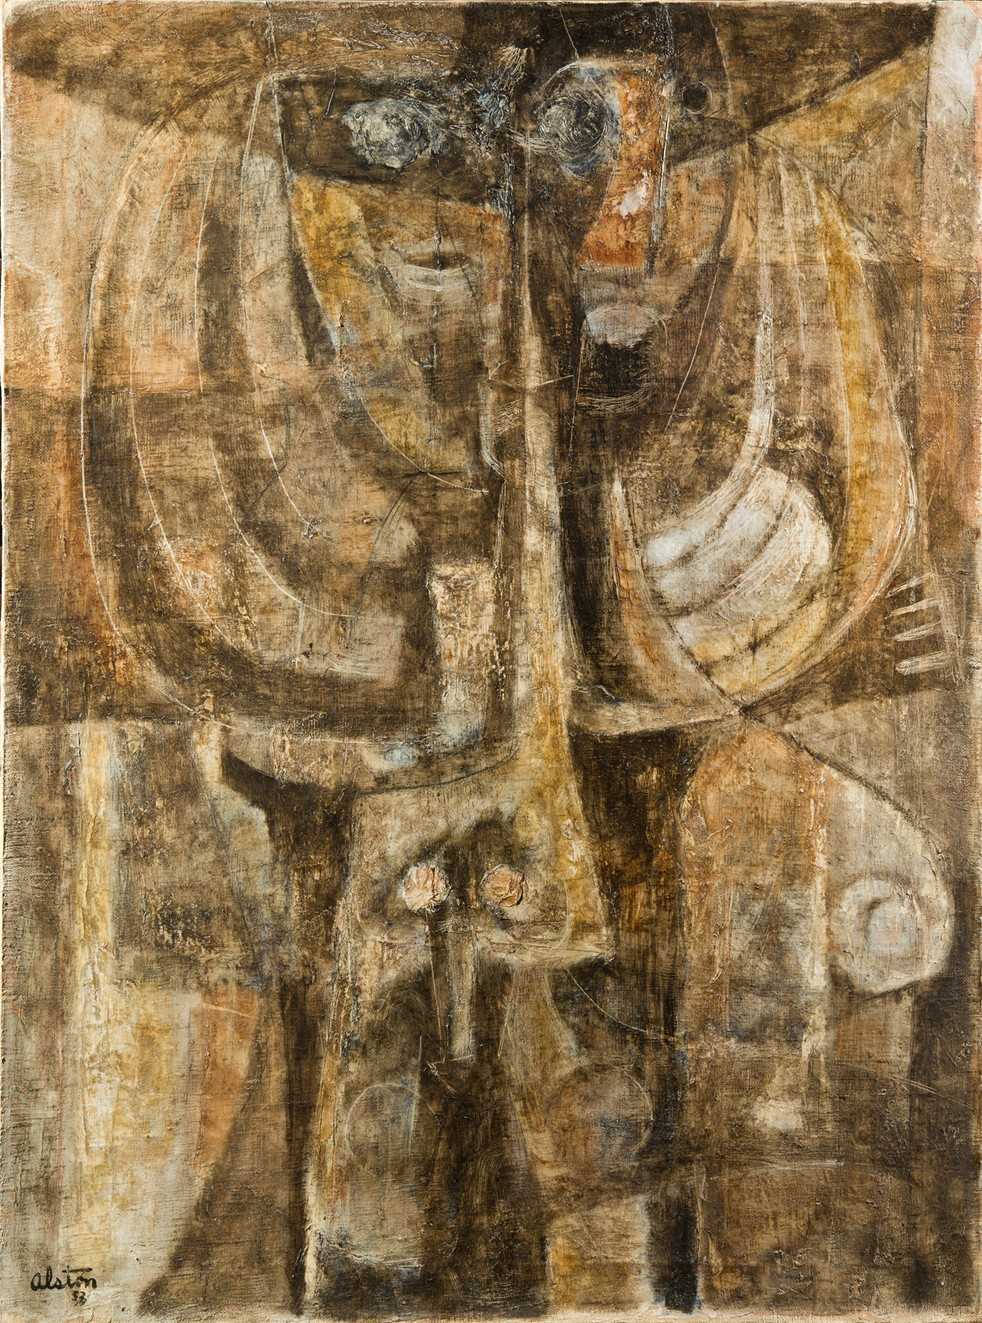 This work by Charles Alston shows shapes inspired by African masks in a muted palette